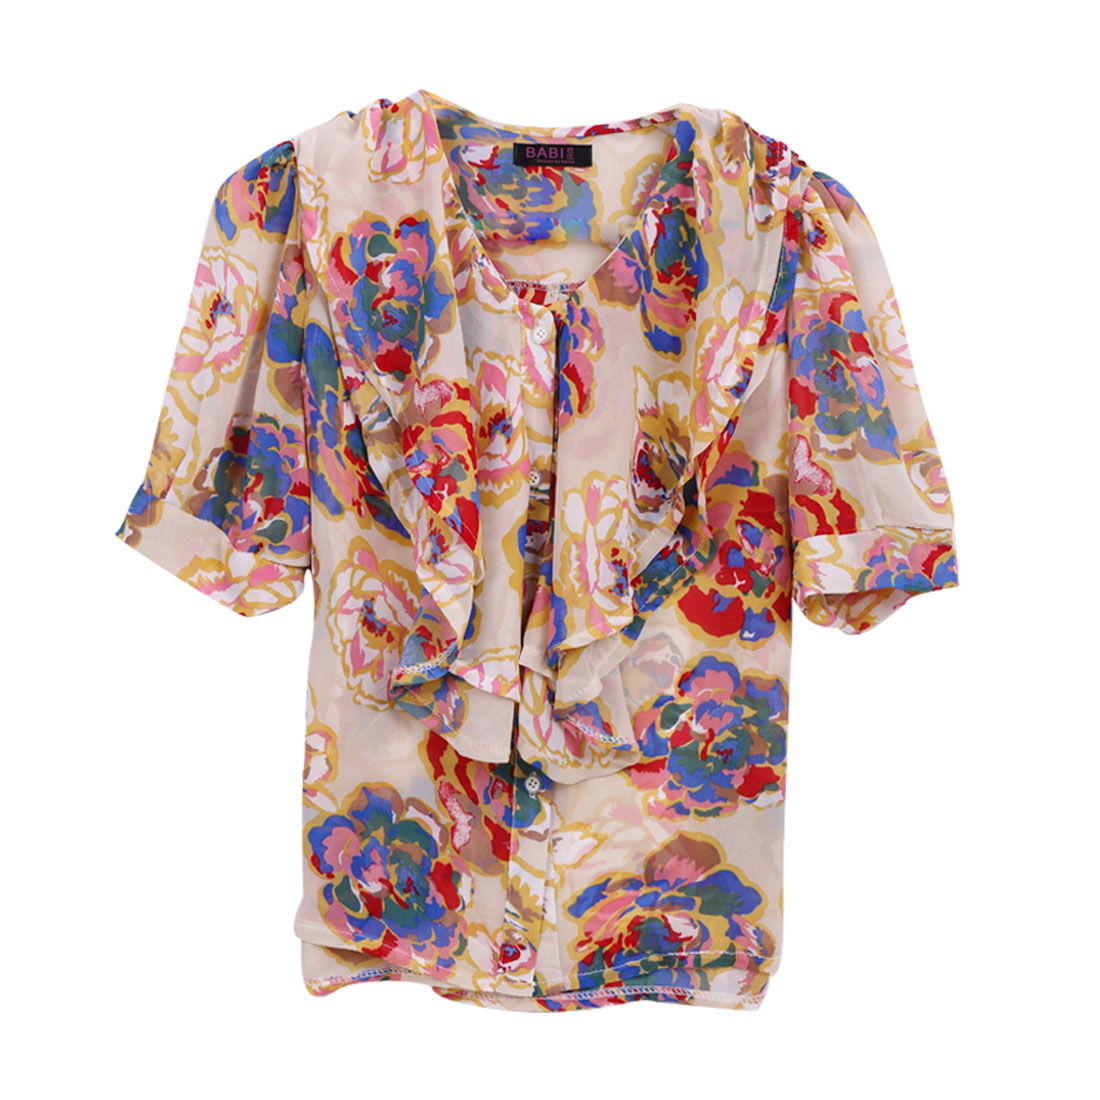 Women Colorful Flowers Embellished Leisure Loose Chiffon Blouse XS See Through